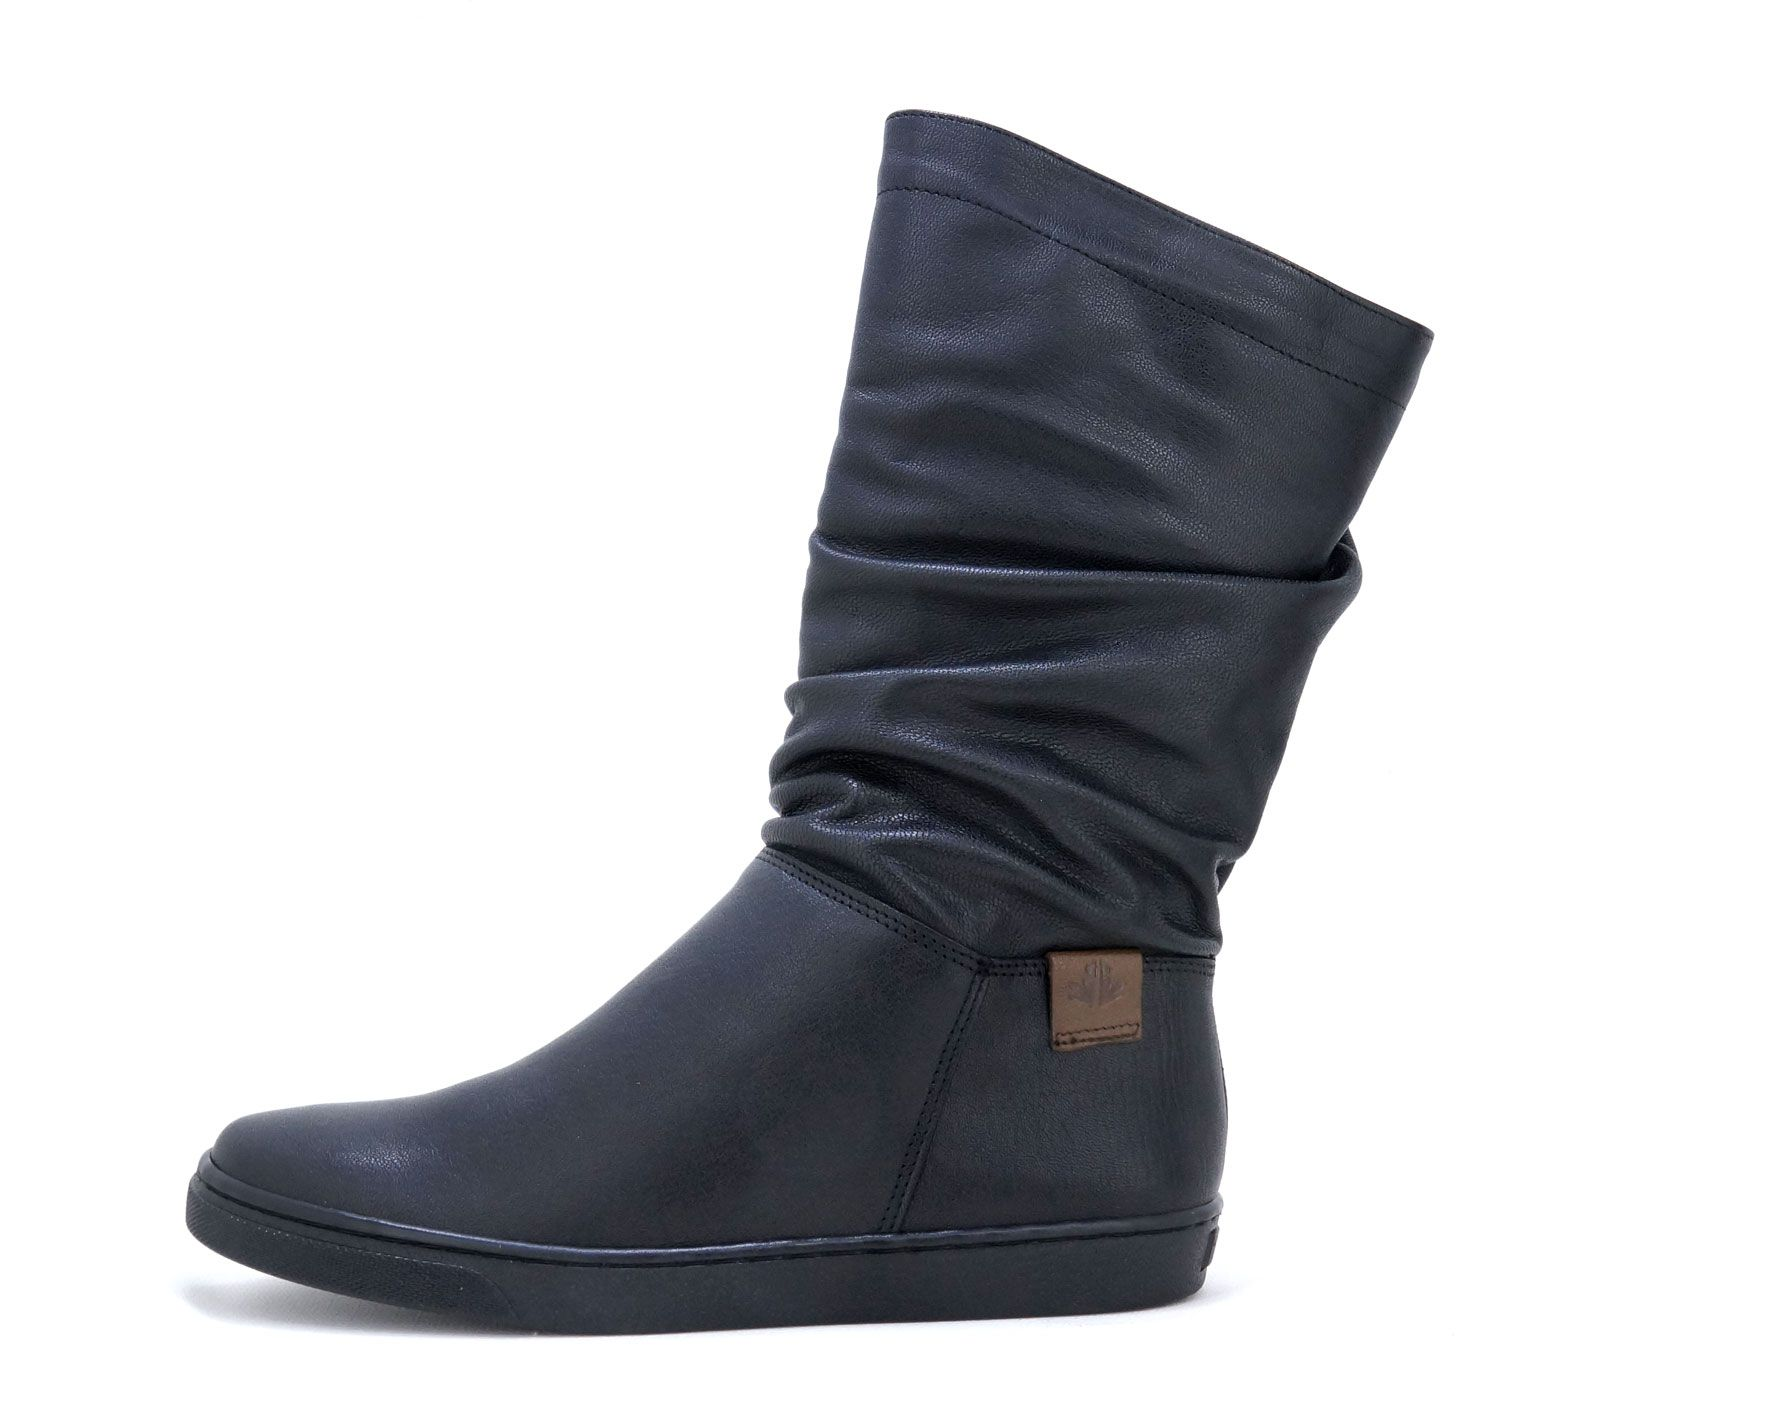 ec68b7cf64f Froggie Black Handcrafted Genuine Leather Calf Length Boot. R 1'399 ...